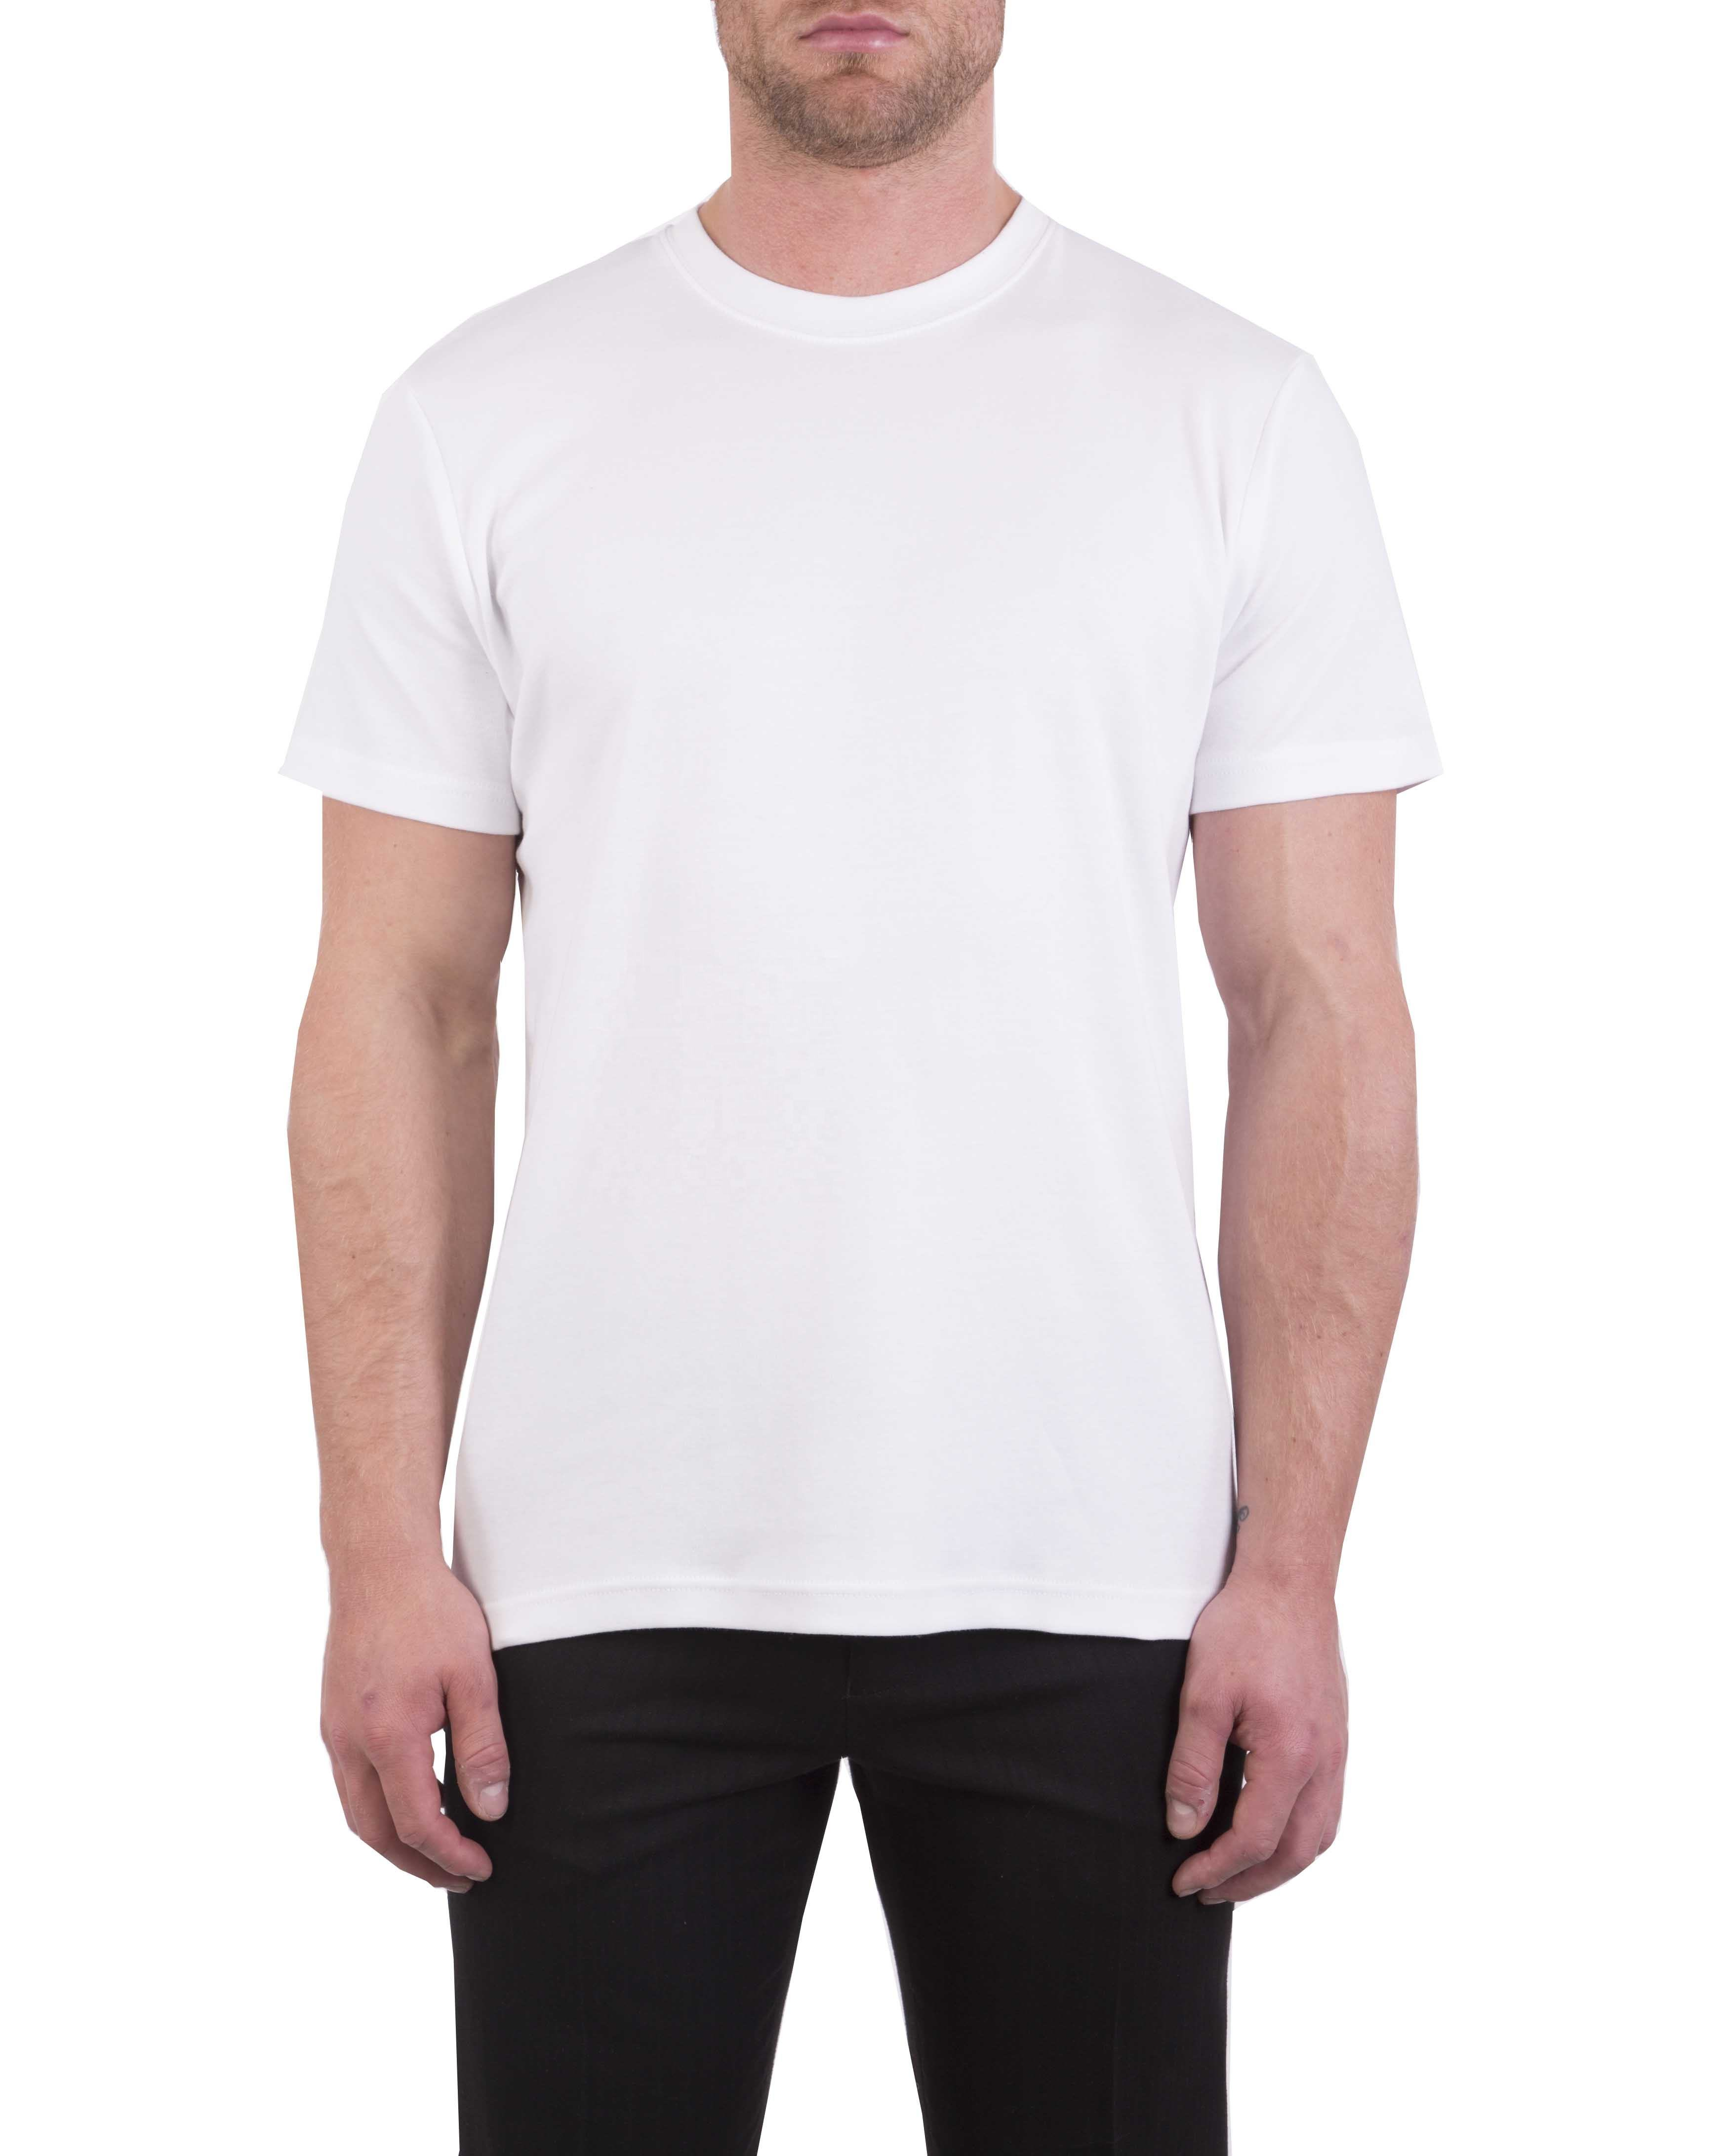 Cheap mens tshirts t-shirt blank plain white below $1 election t shirt